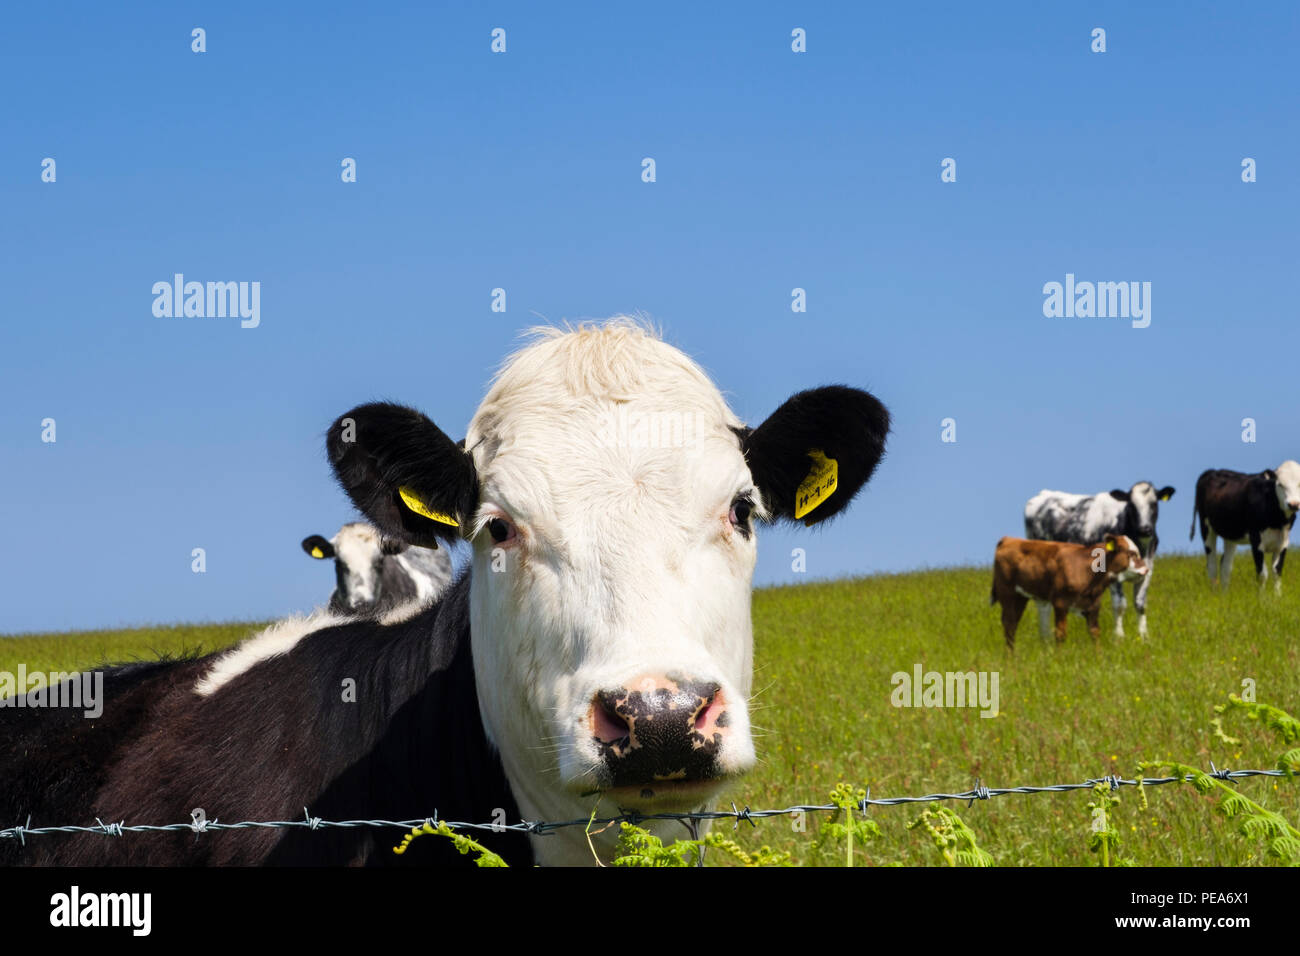 Inquisitive Black and white Freisian cow in a field of dairy cows looking over a barbed wire fence. Isle of Anglesey, Wales, UK, Britain - Stock Image